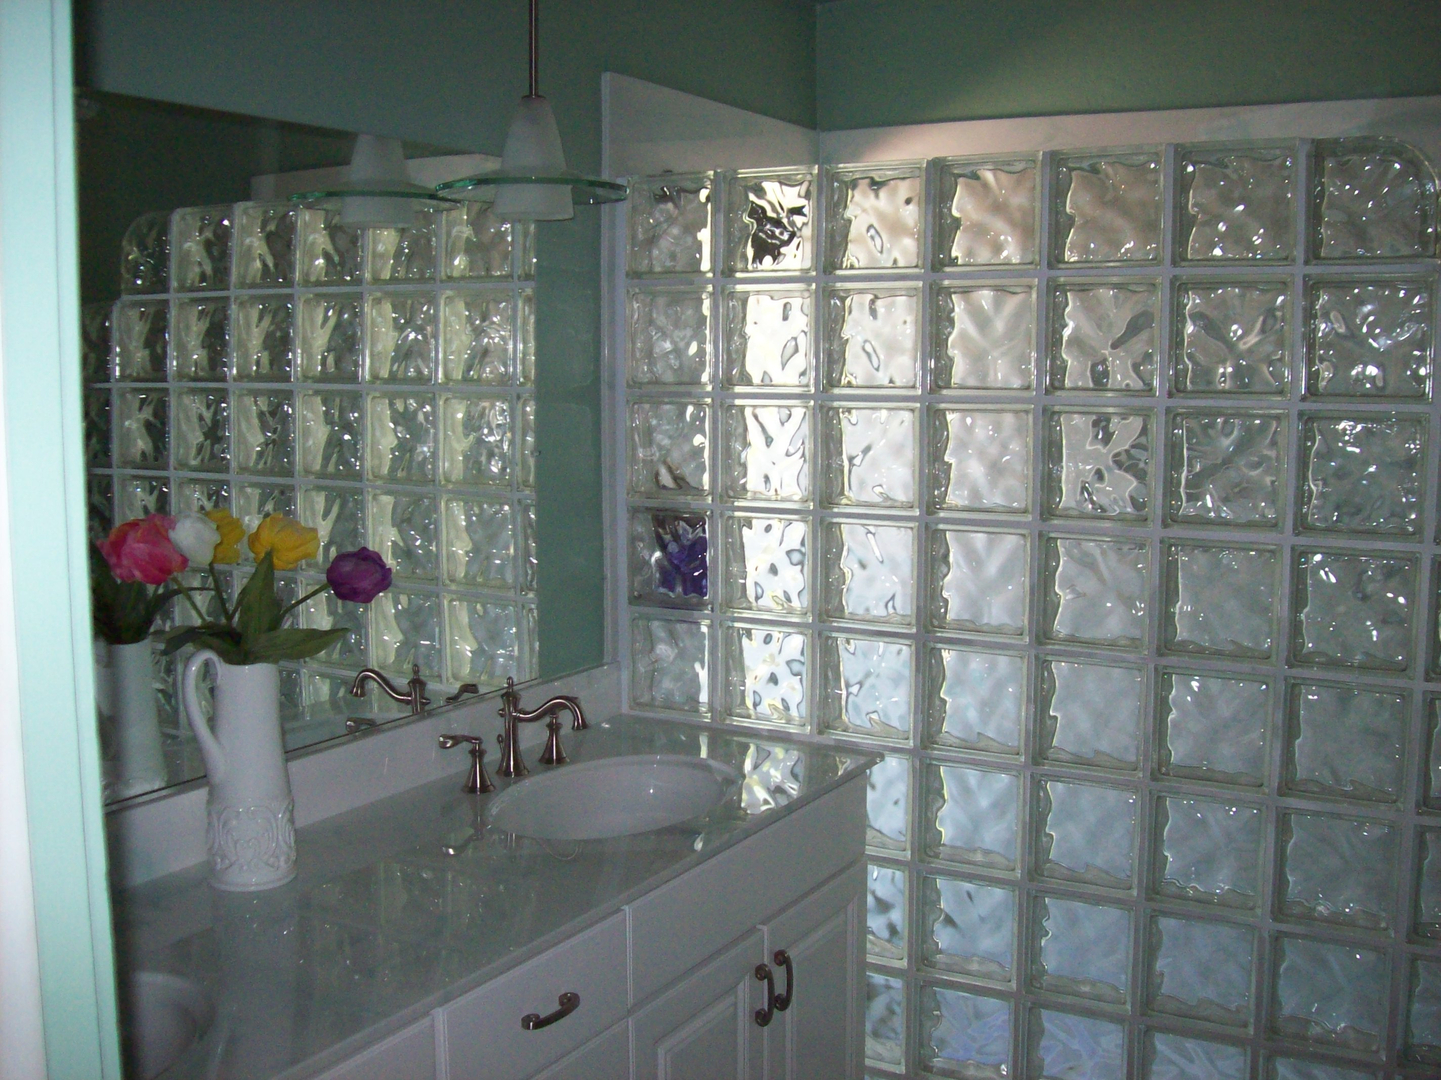 Bathroom Remodeling Tucson Az Bathroom Remodeling Kitchen Remodeling  Steve Wright  Tucson Az